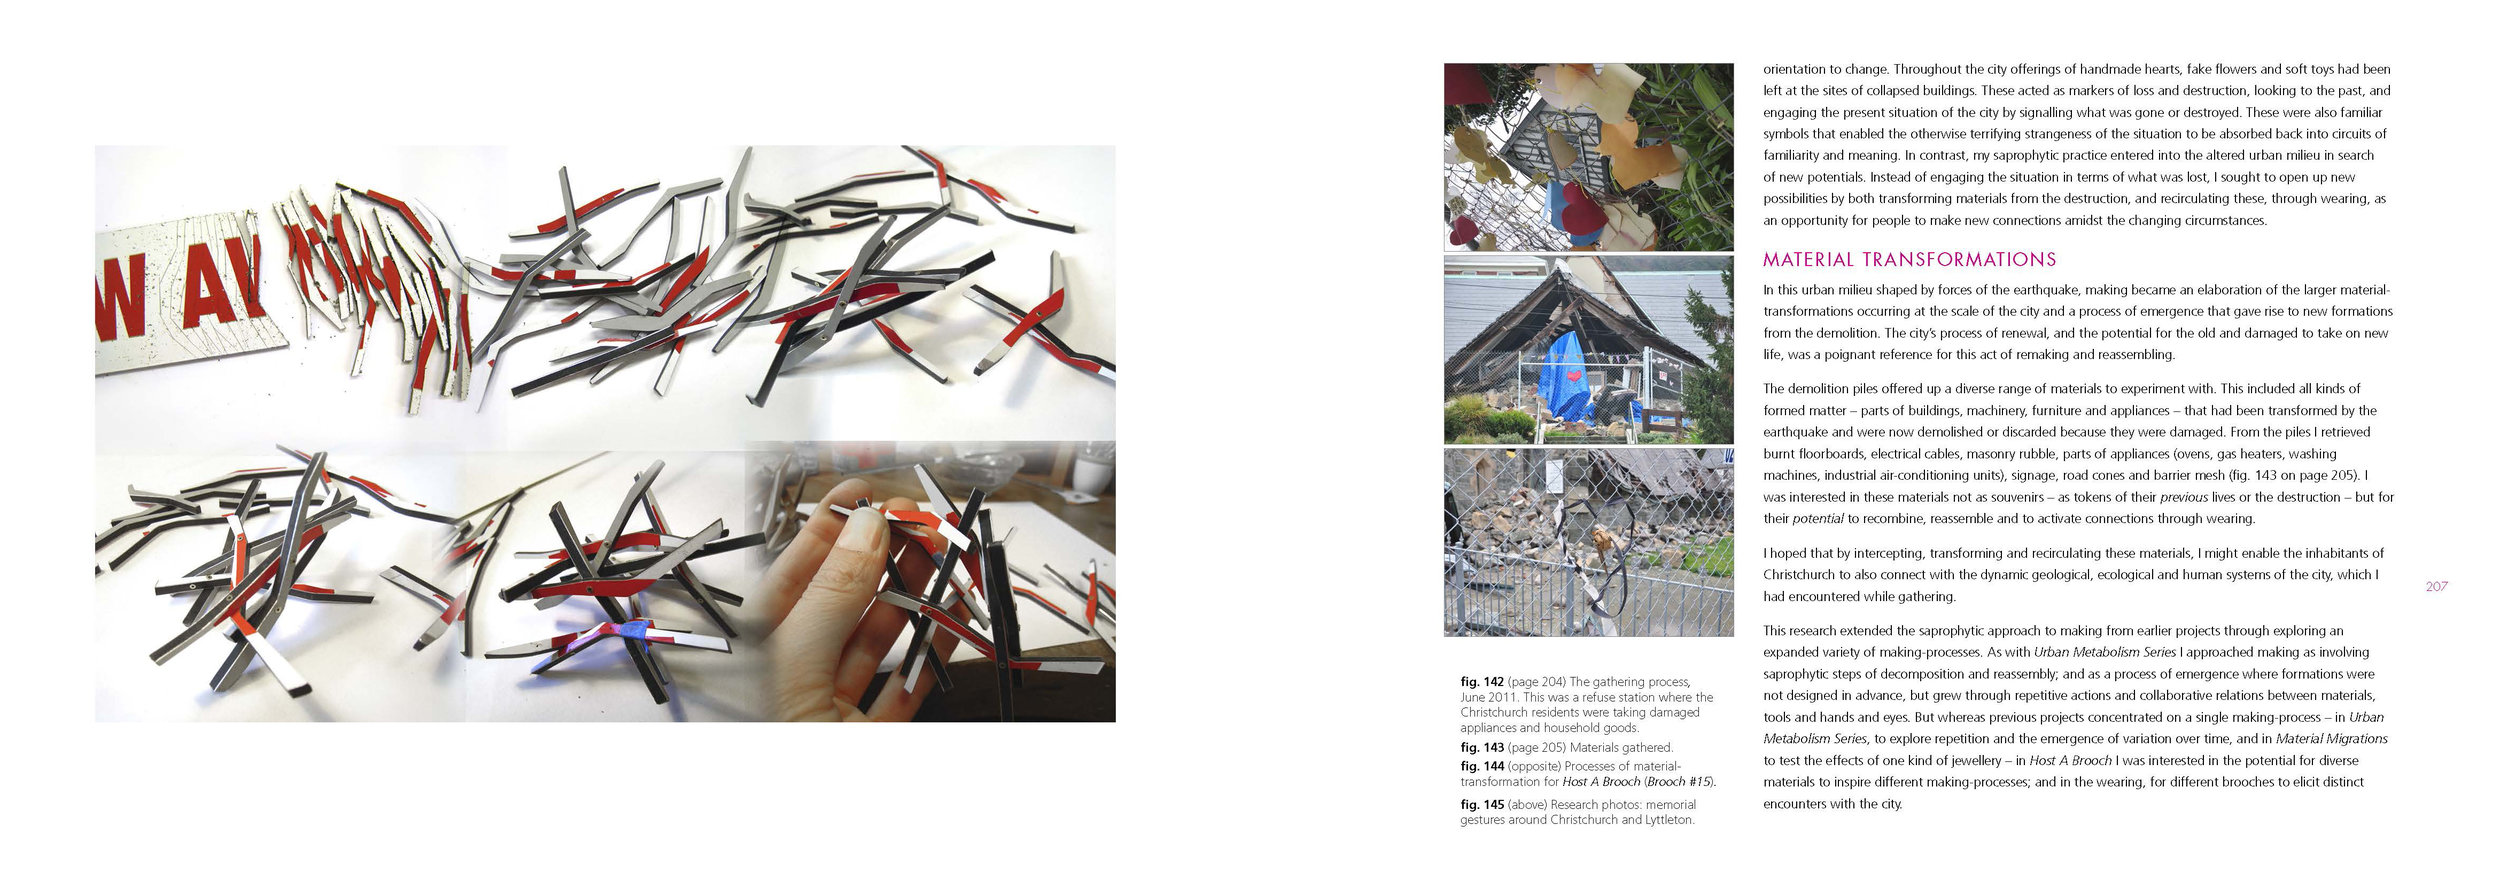 Jacqui Chan_jewellery in the urban milieu_part 3_project milieu 04 + conclusion_Page_016.jpg